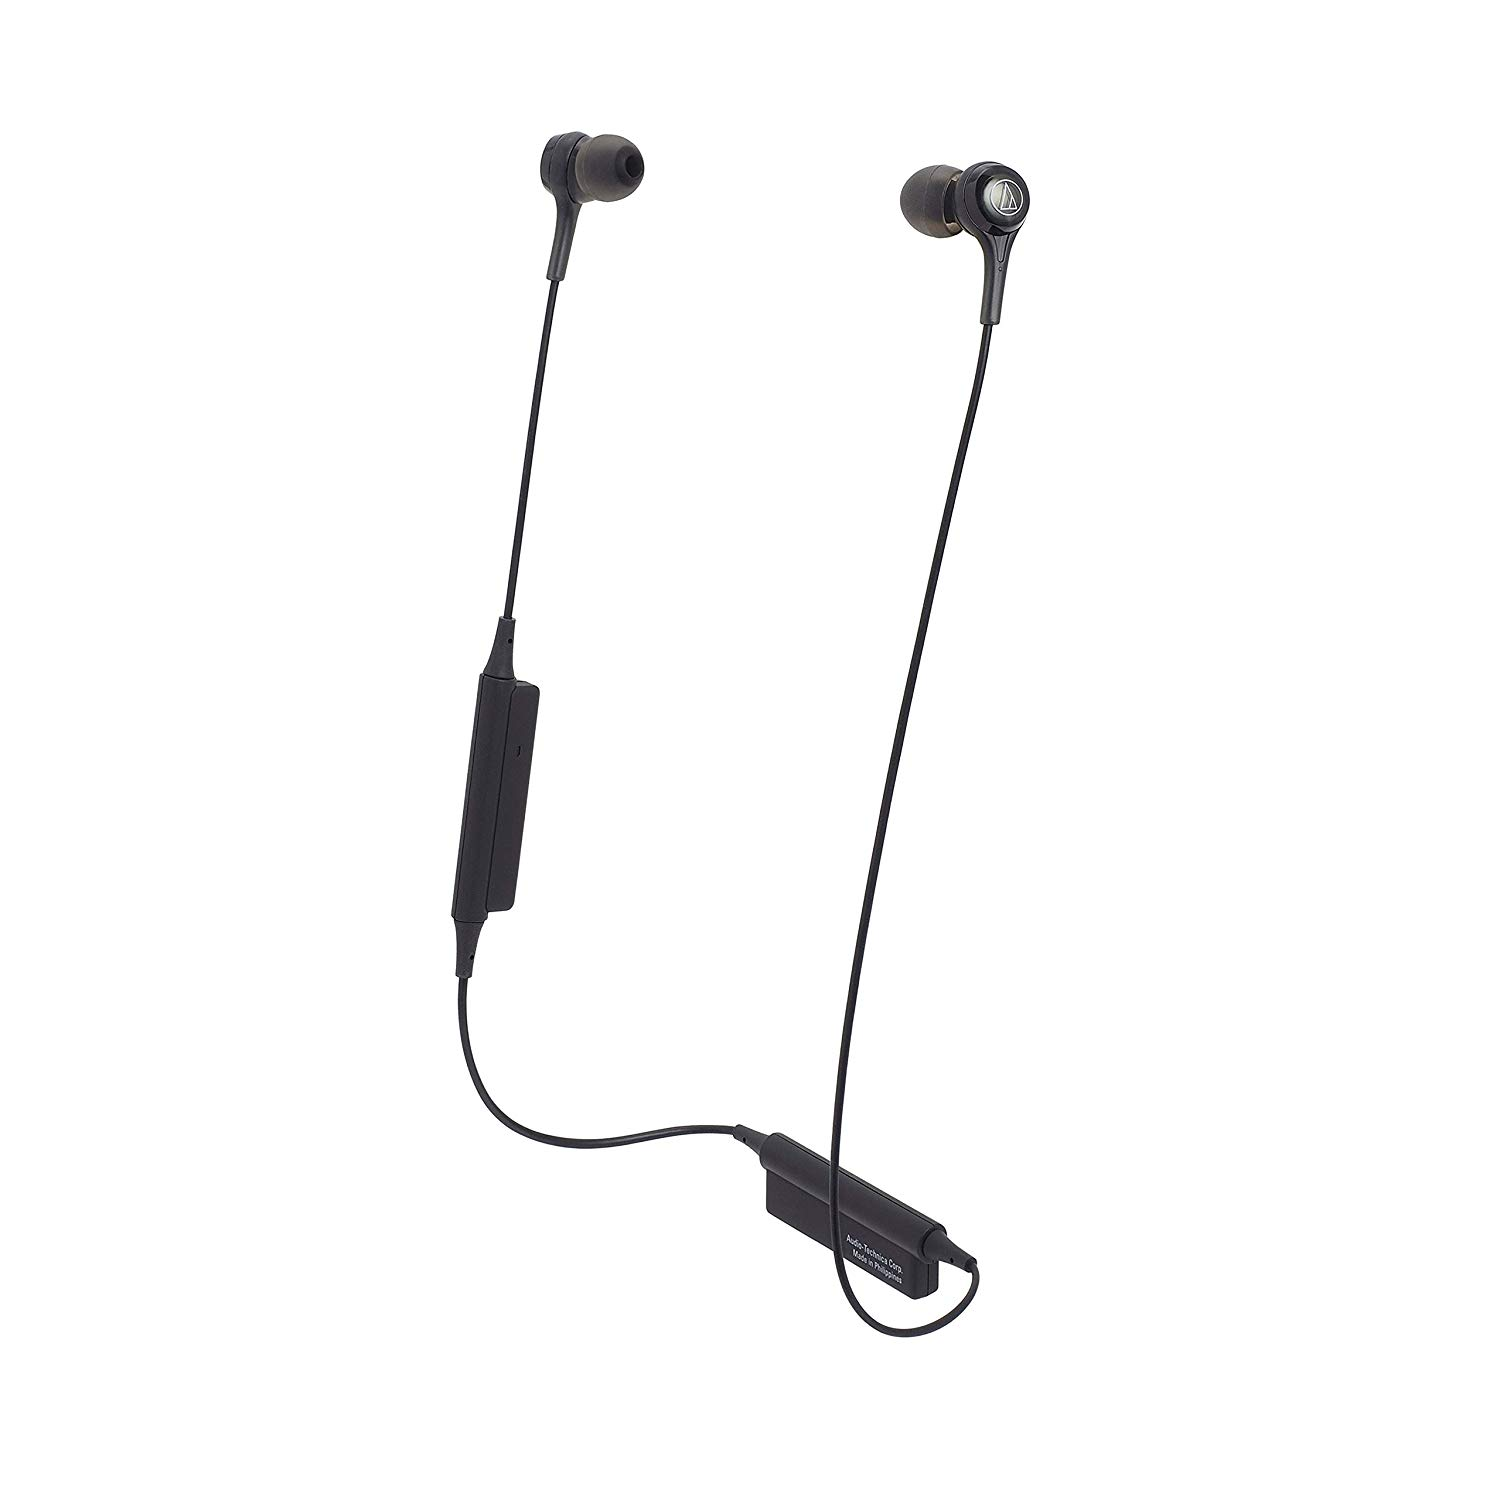 Audio-Technica ATH-CK200BTBK Bluetooth Wireless In-Ear Headphone